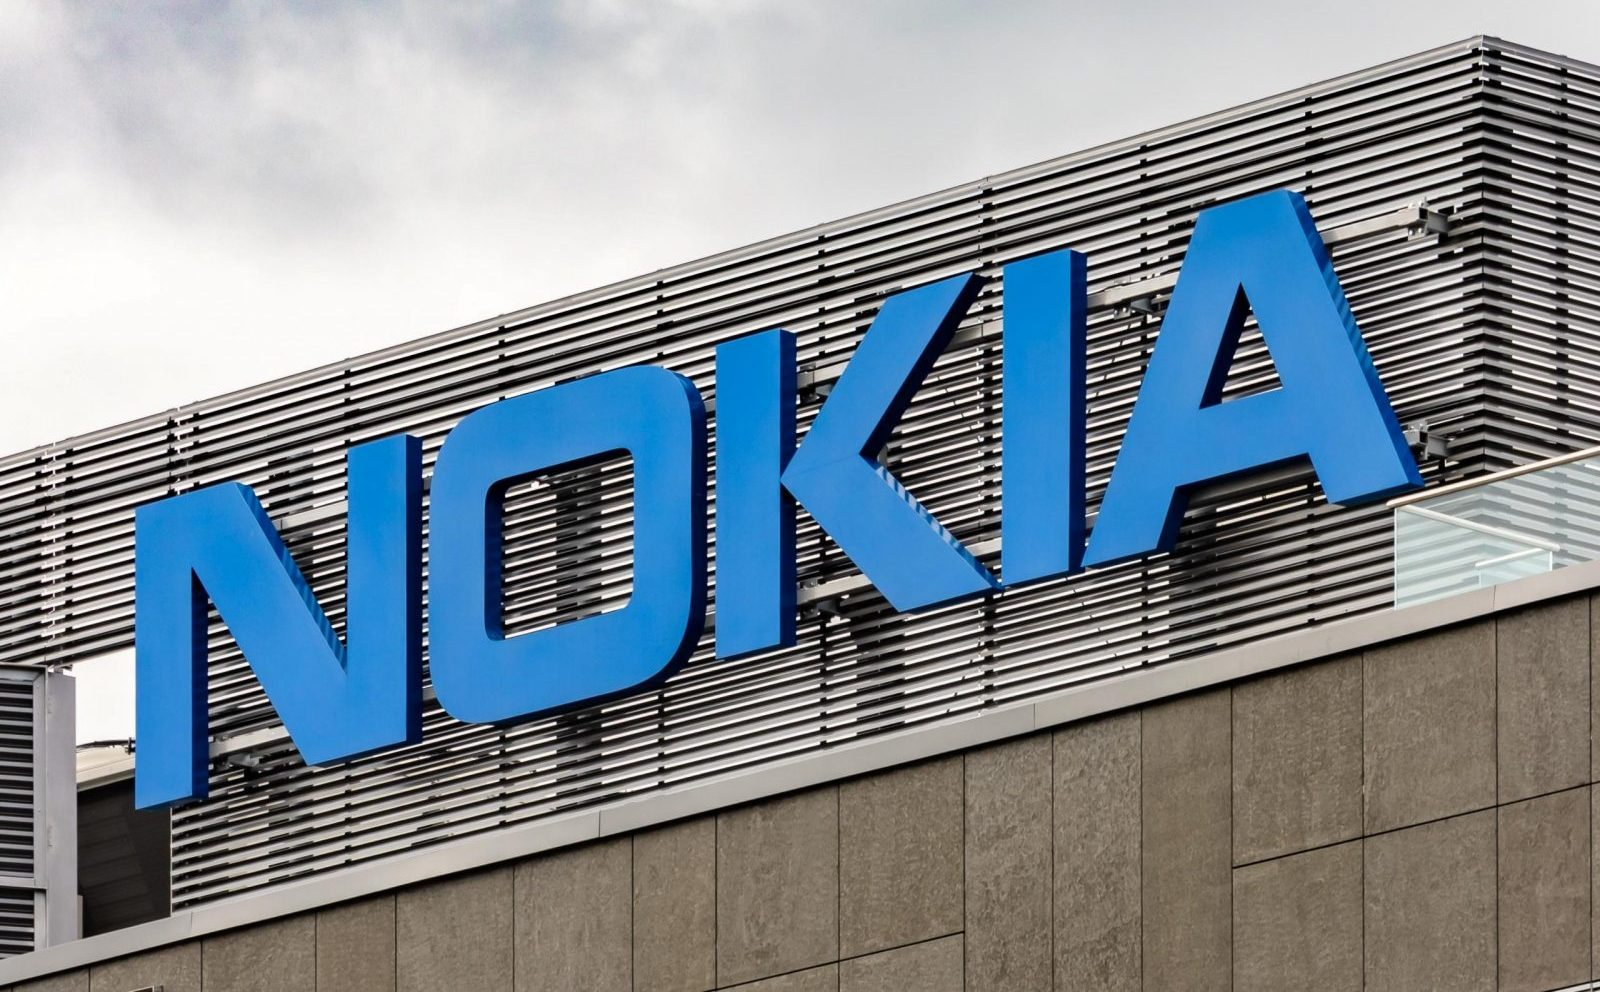 New 4K Android Box with Nokia Brand Sold in Europe